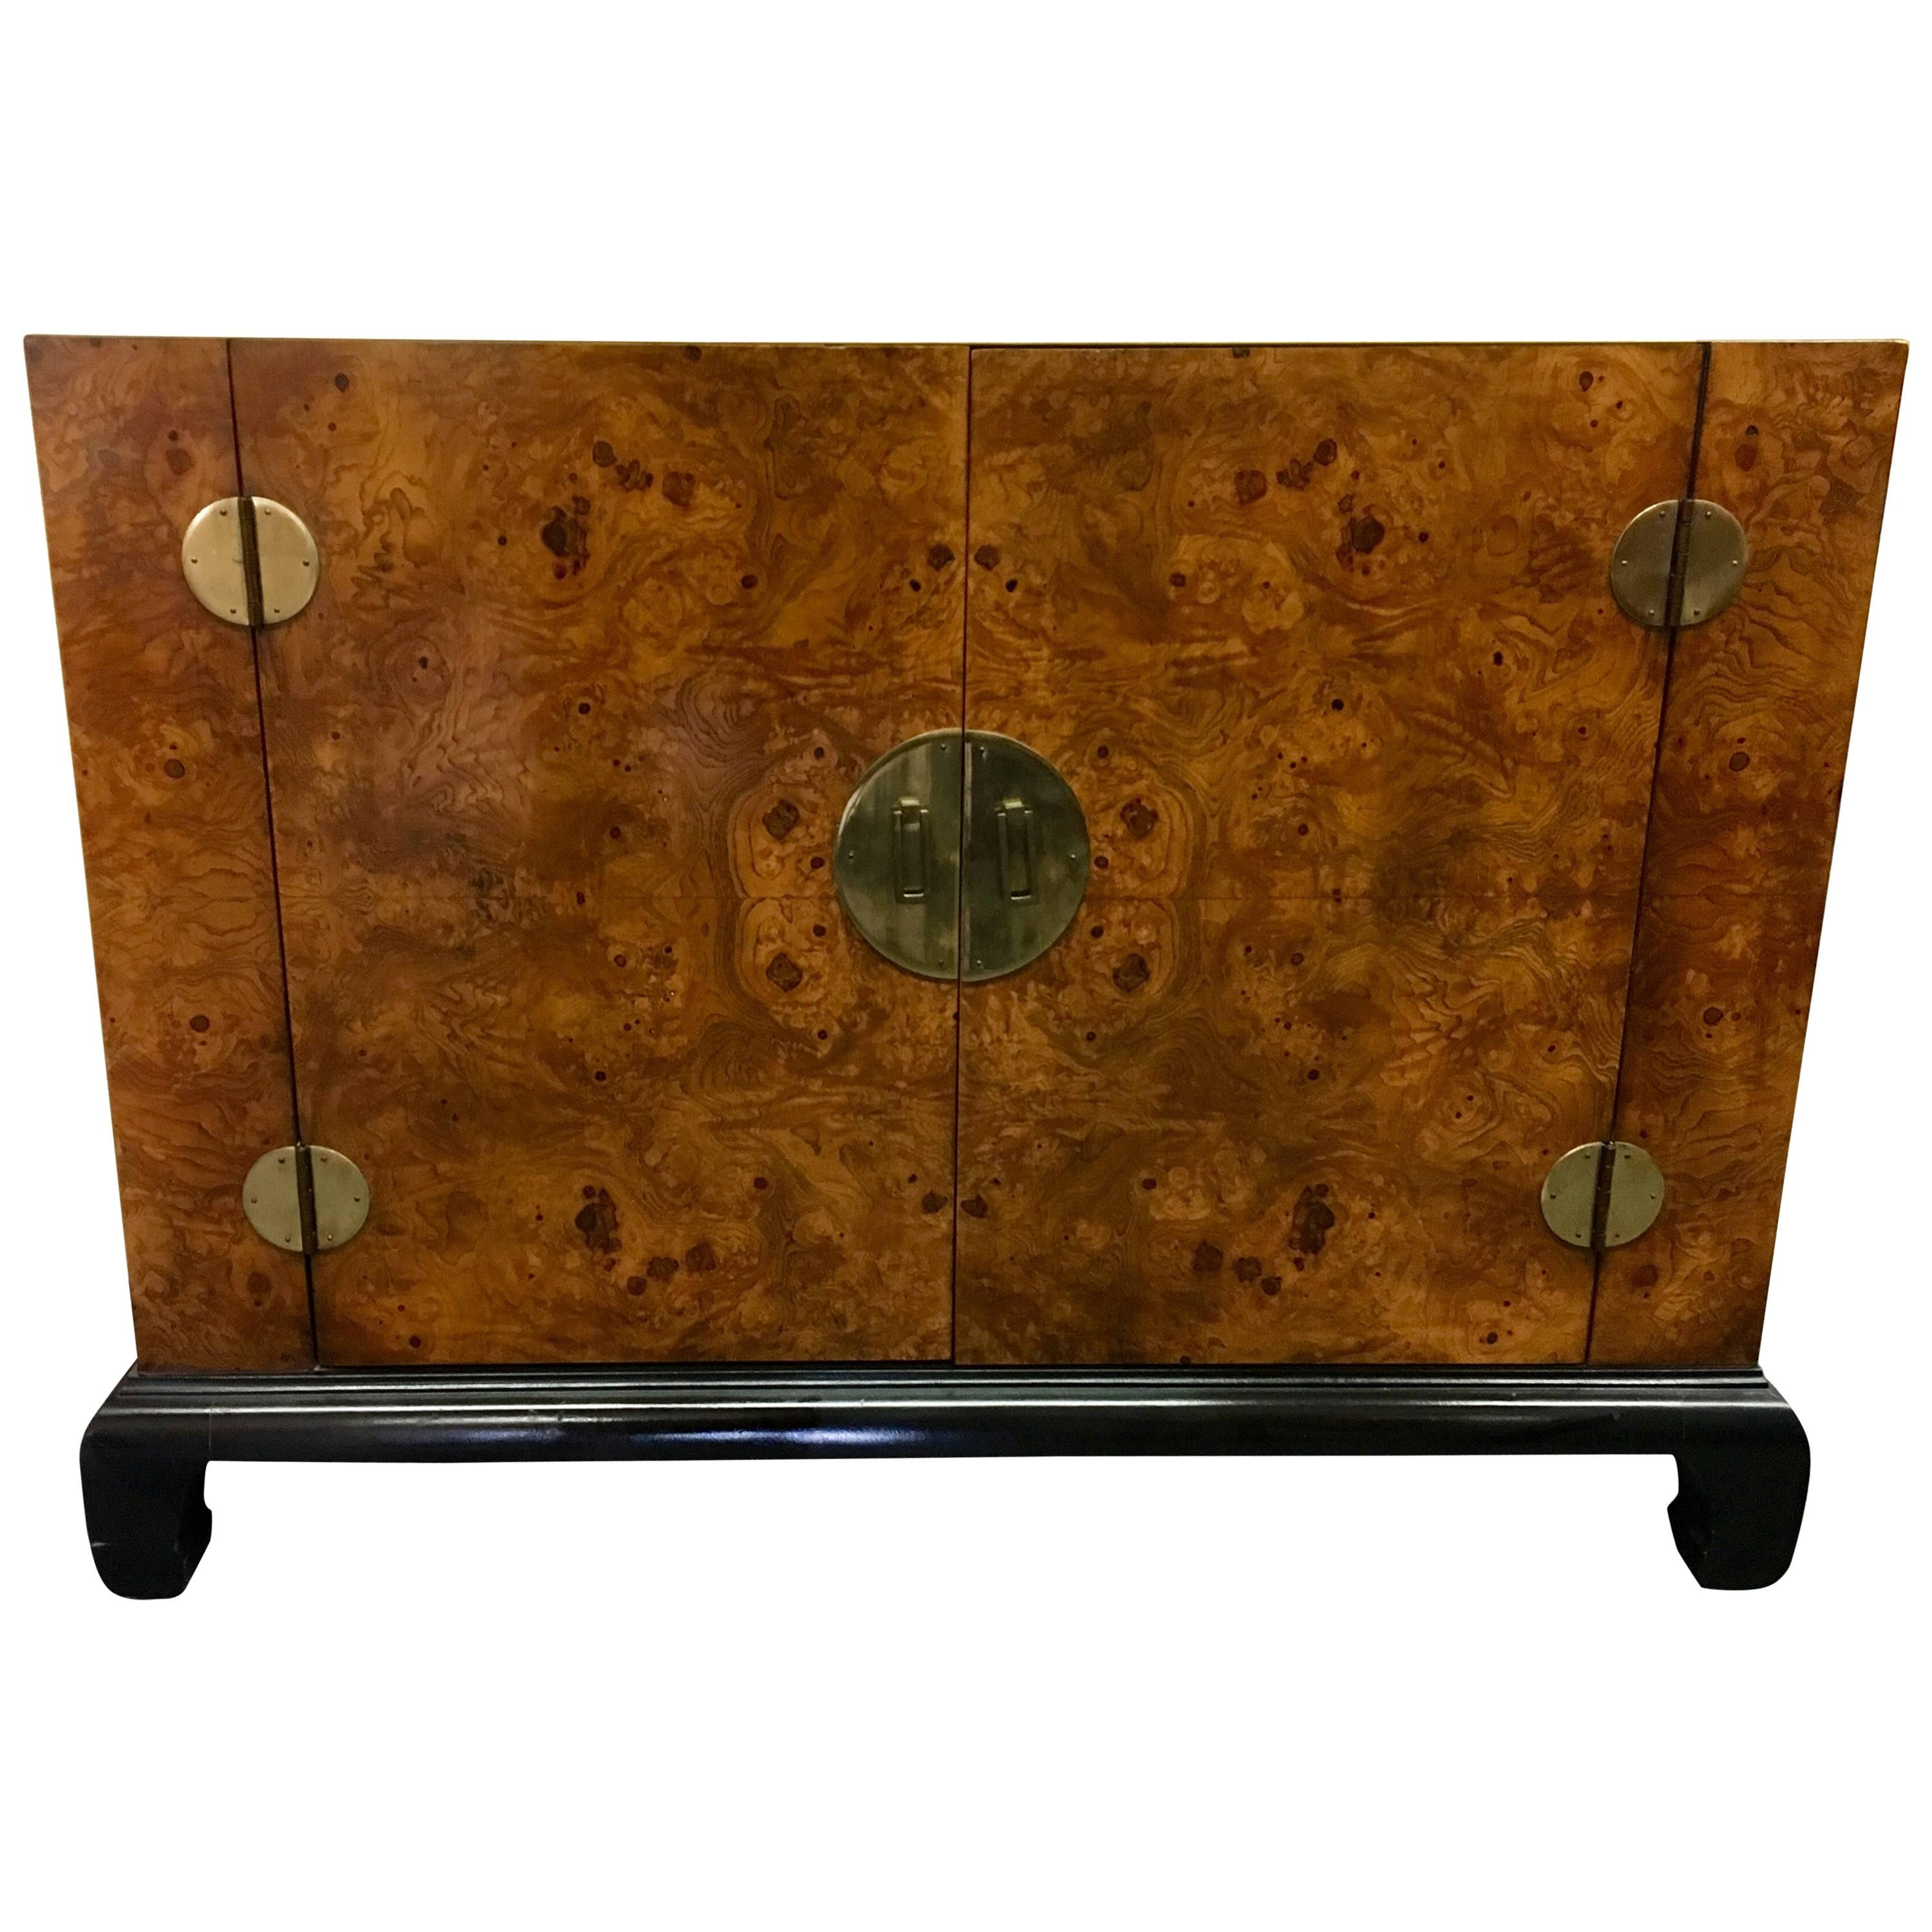 asian midcentury modern burl wood cabinet by hekman - Hekman Furniture